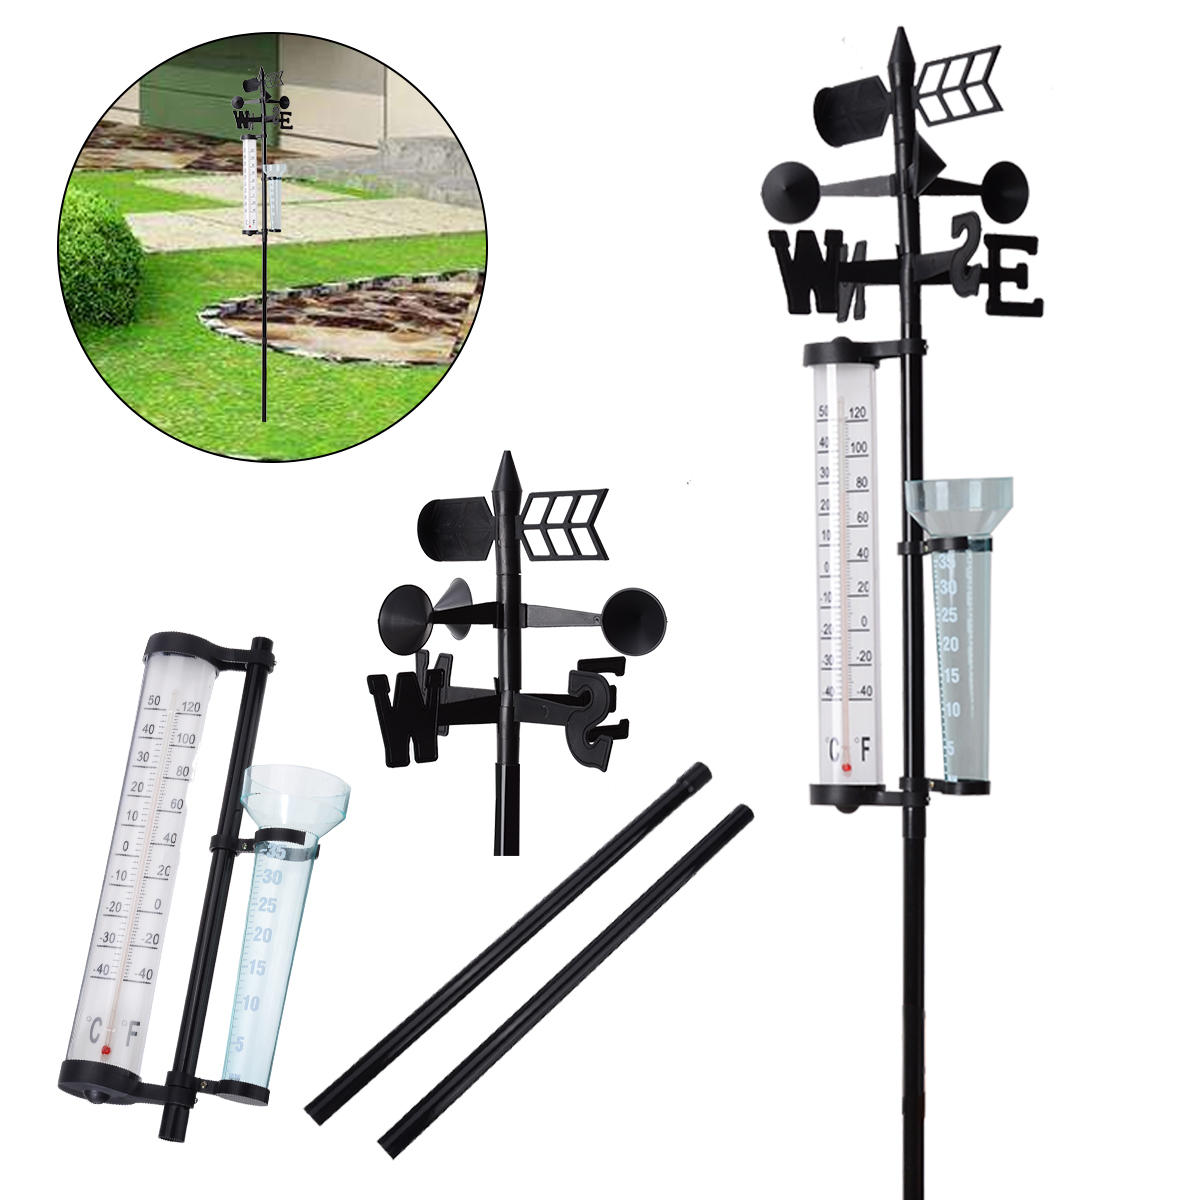 Multifunction Outdoor Garden Weather Station Meteorological Measurer Vane Tool Wind Rain Gauge Temperature Instruments